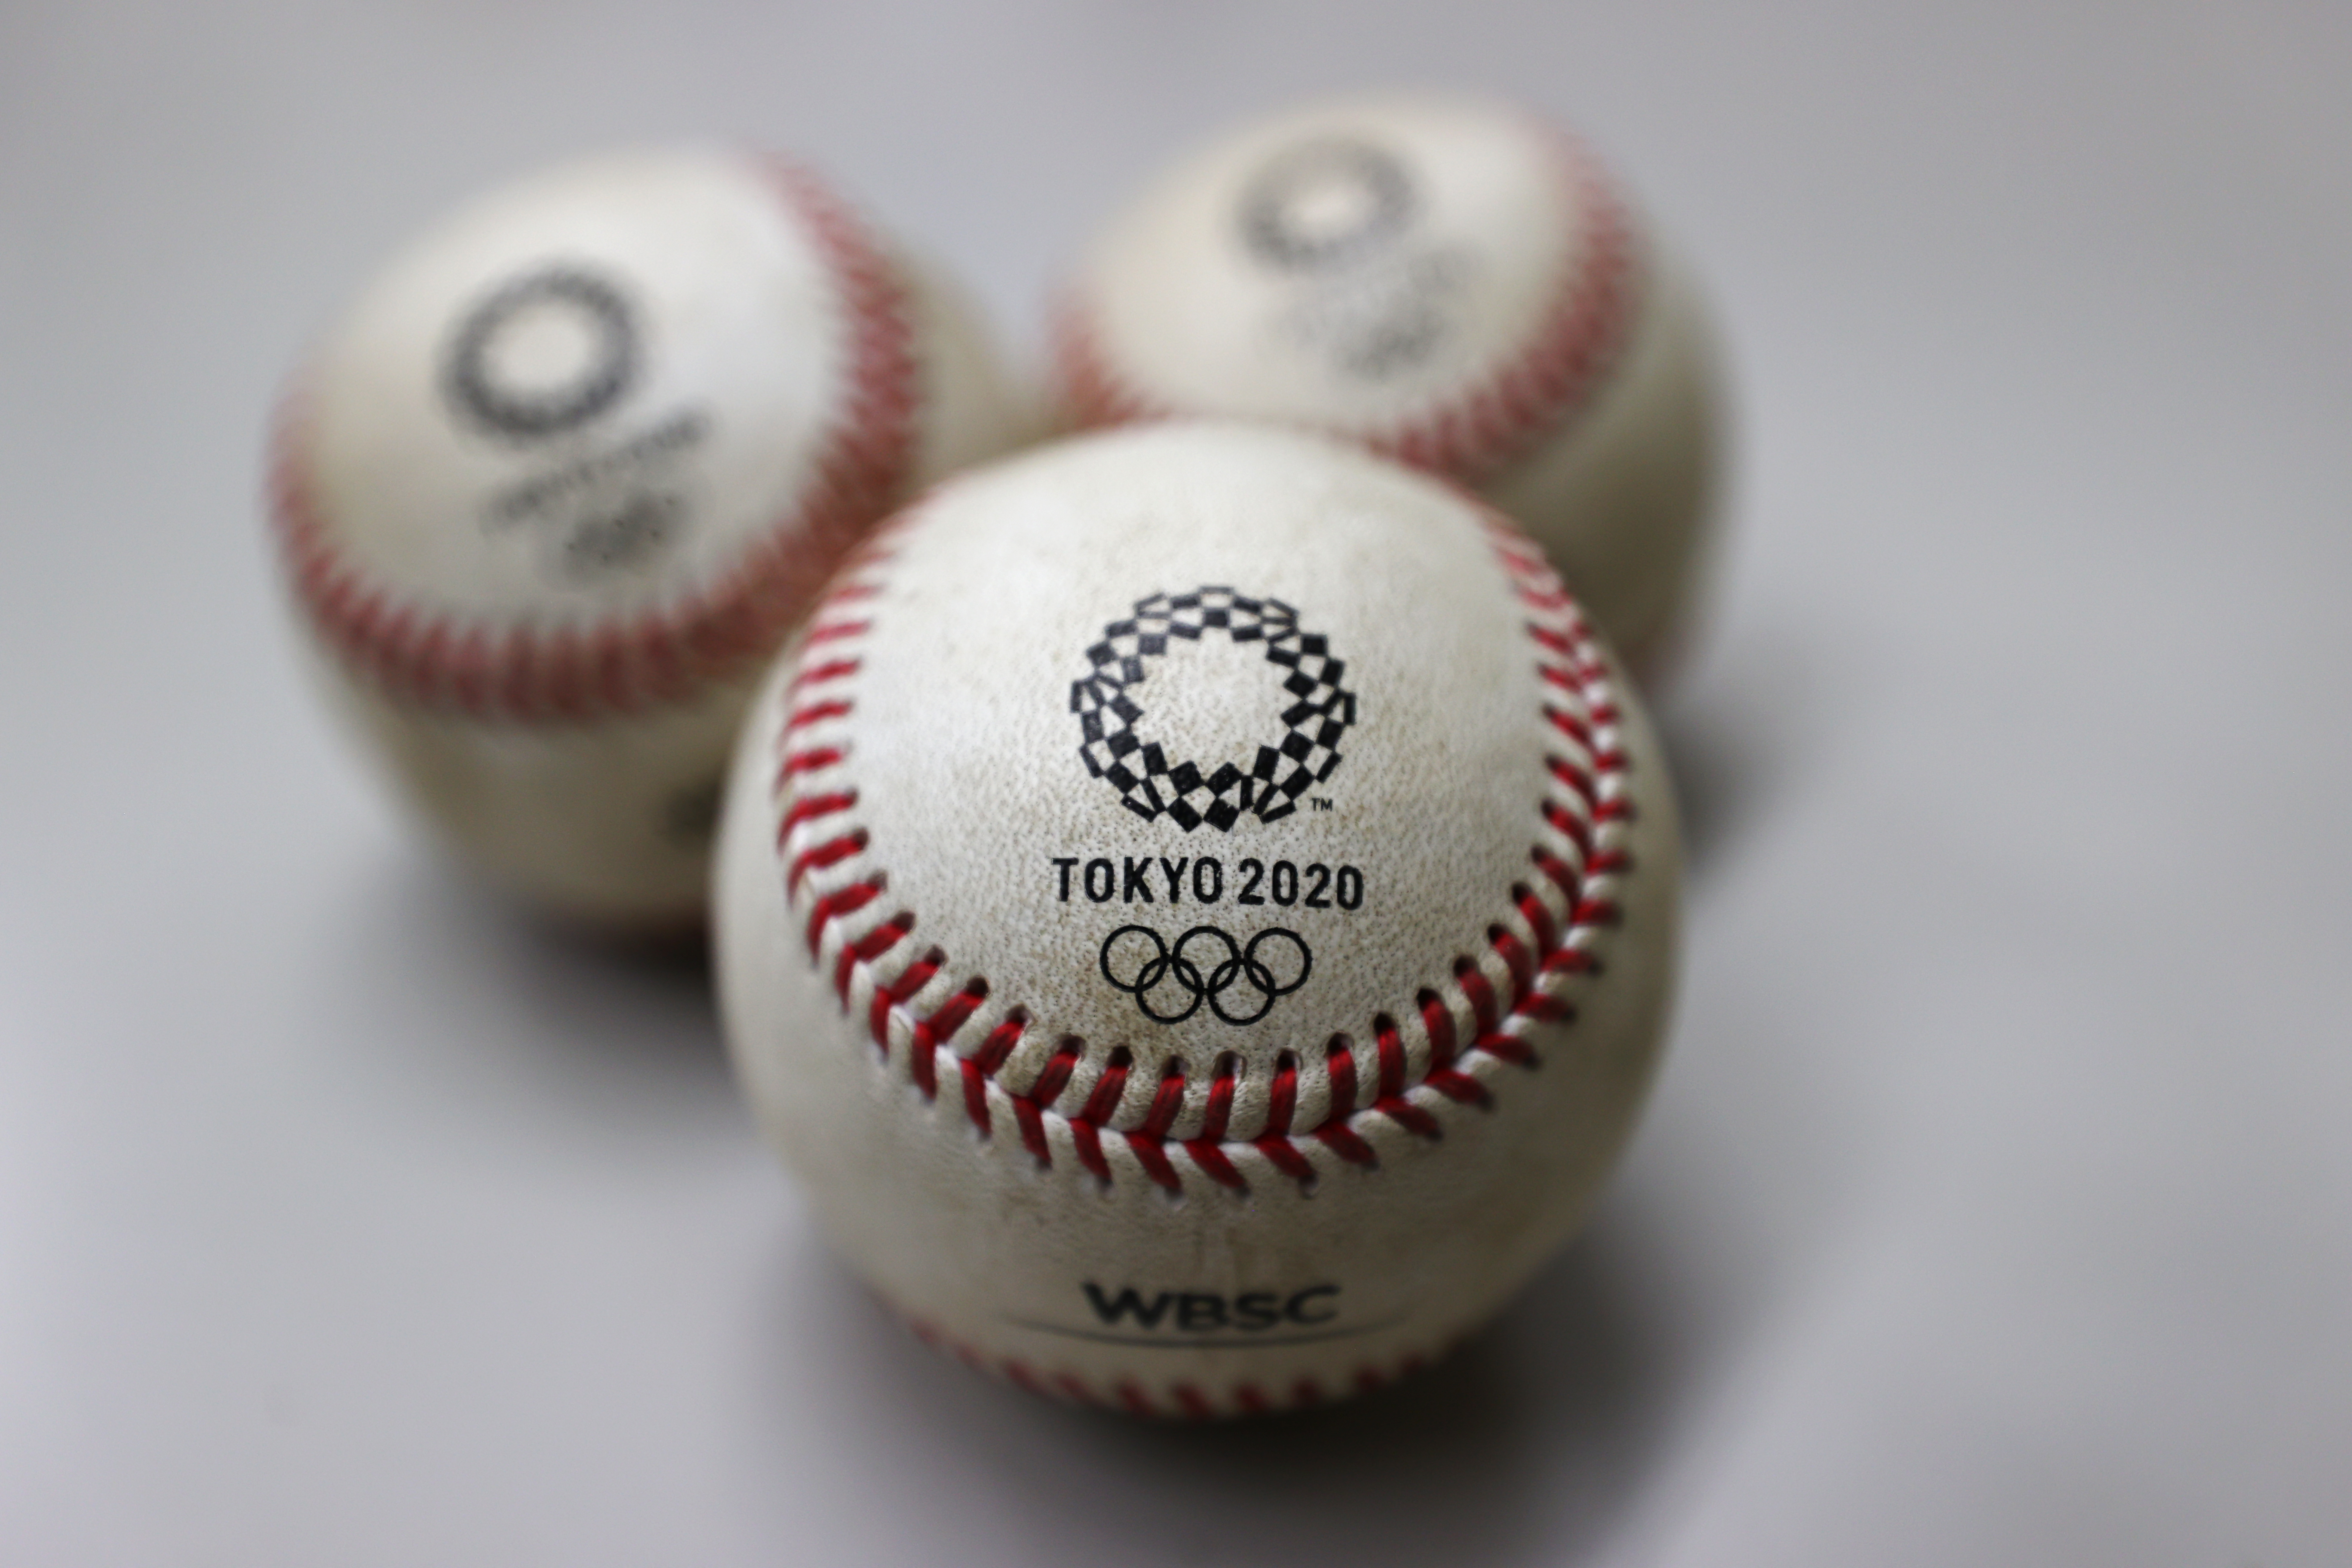 Baseballs are seen after being rubbed with mud by umpiring officials prior to a game during the Tokyo 2020 Olympics at the Yokohama Baseball Stadium in Yokohama, Japan July 30, 2021. REUTERS/Jorge Silva